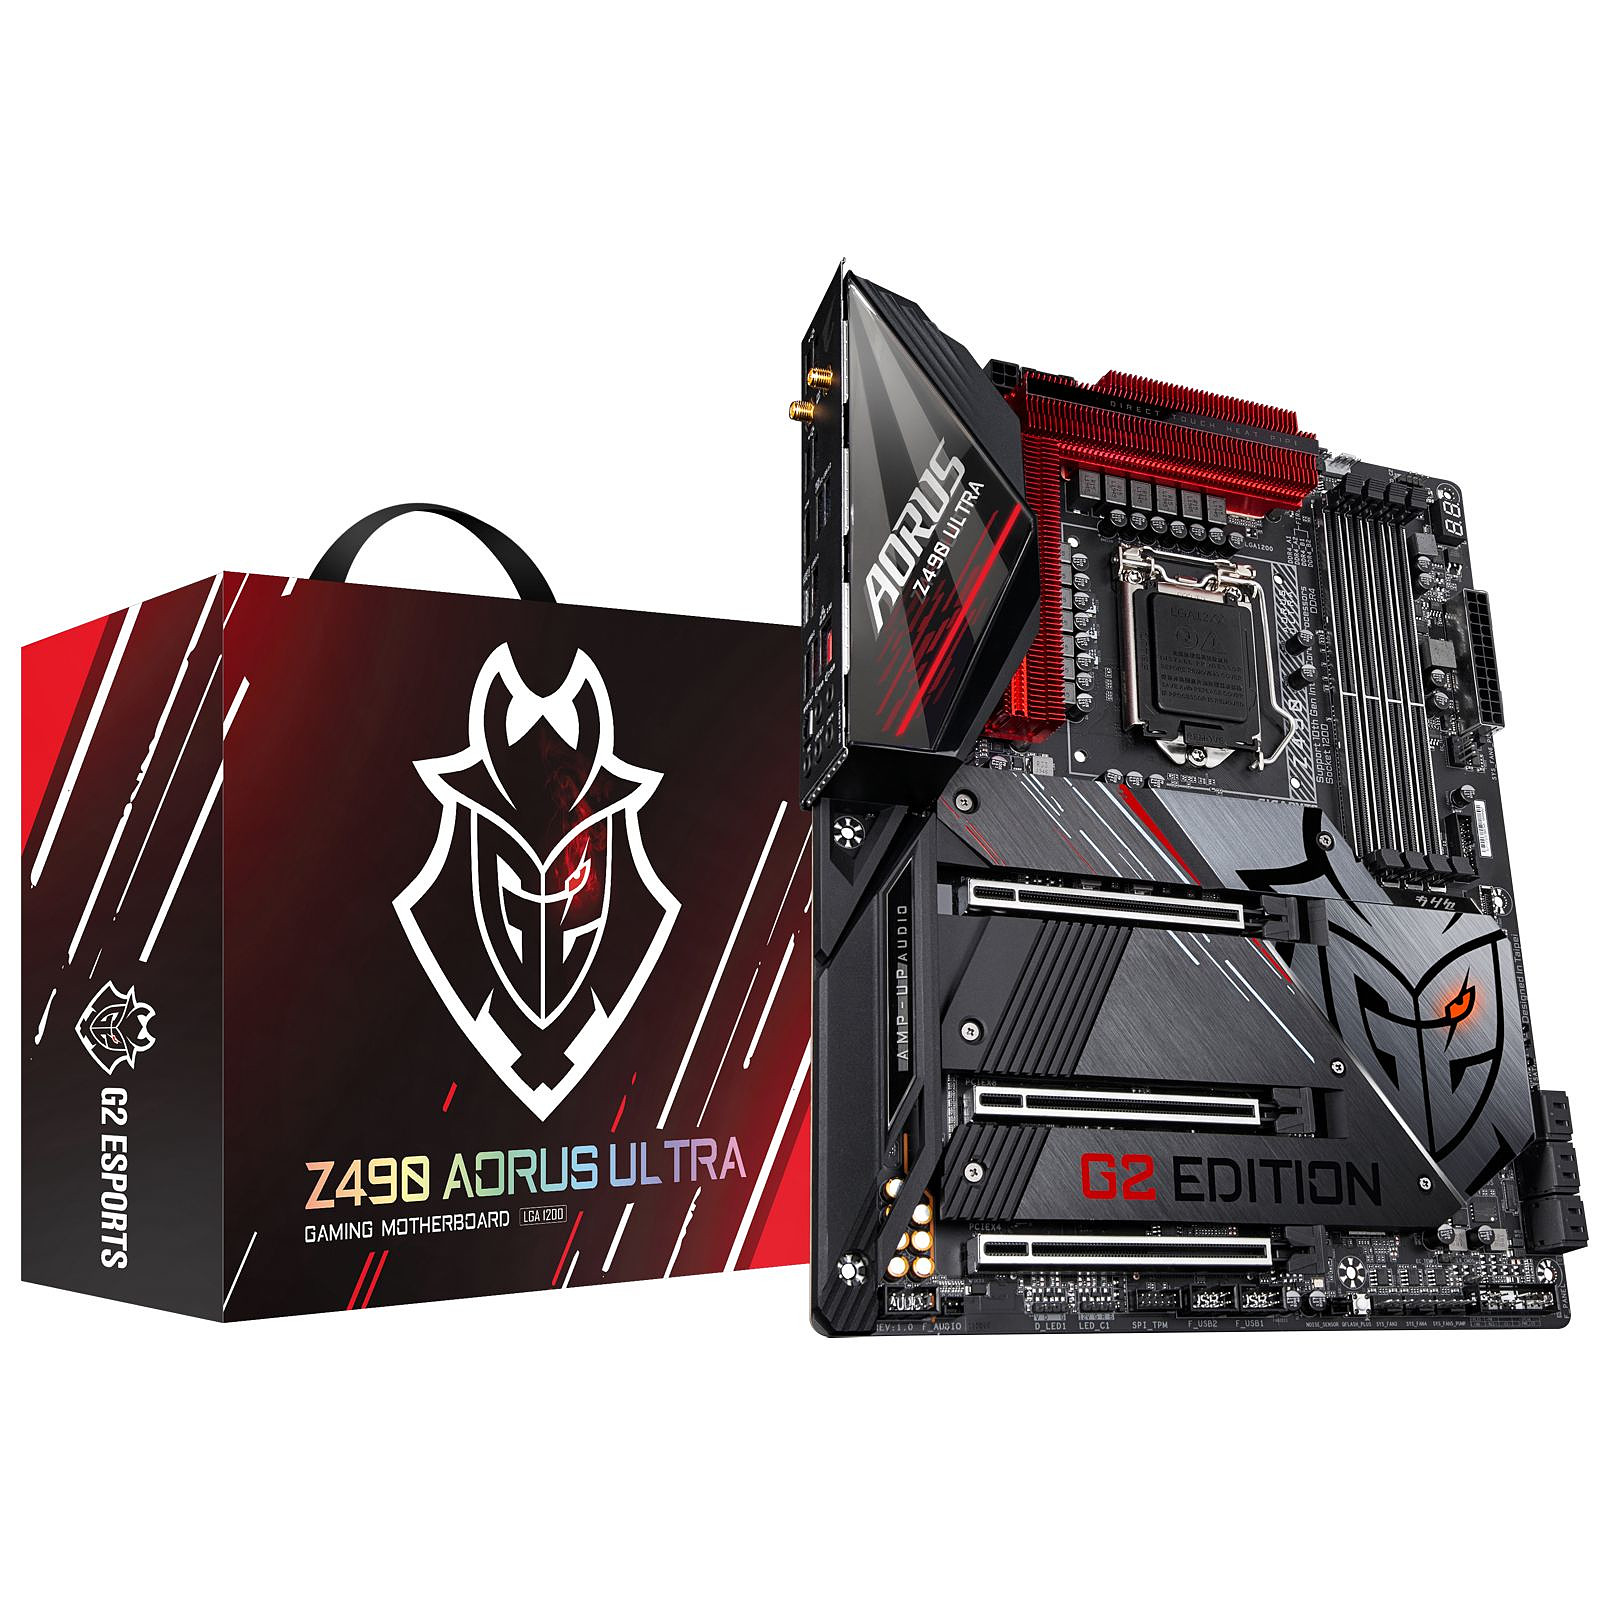 Gigabyte Z490 AORUS ULTRA G2 LIMITED EDITION